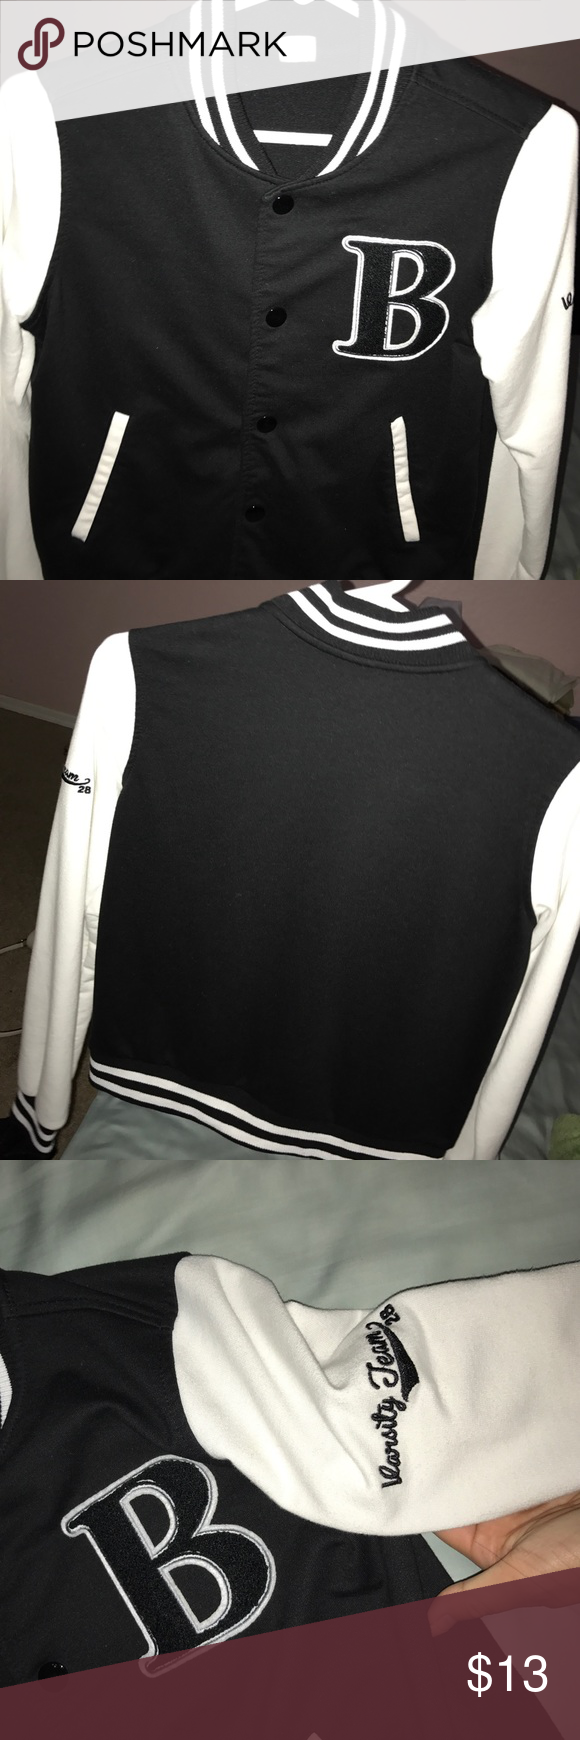 Black and White Varsity Jacket I actually bought this years ago in middle school but have never actually worn in. I bought it from Marshals. It's a size small. It would be perfect to wear for a super cute outfit or events such as character day or decades day! If you're in high and participate in spirit week this may help! It's comfy and keeps you pretty warm! Jackets & Coats #decadesdayspiritweek Black and White Varsity Jacket I actually bought this years ago in middle school but have never actu #characterdayspiritweek